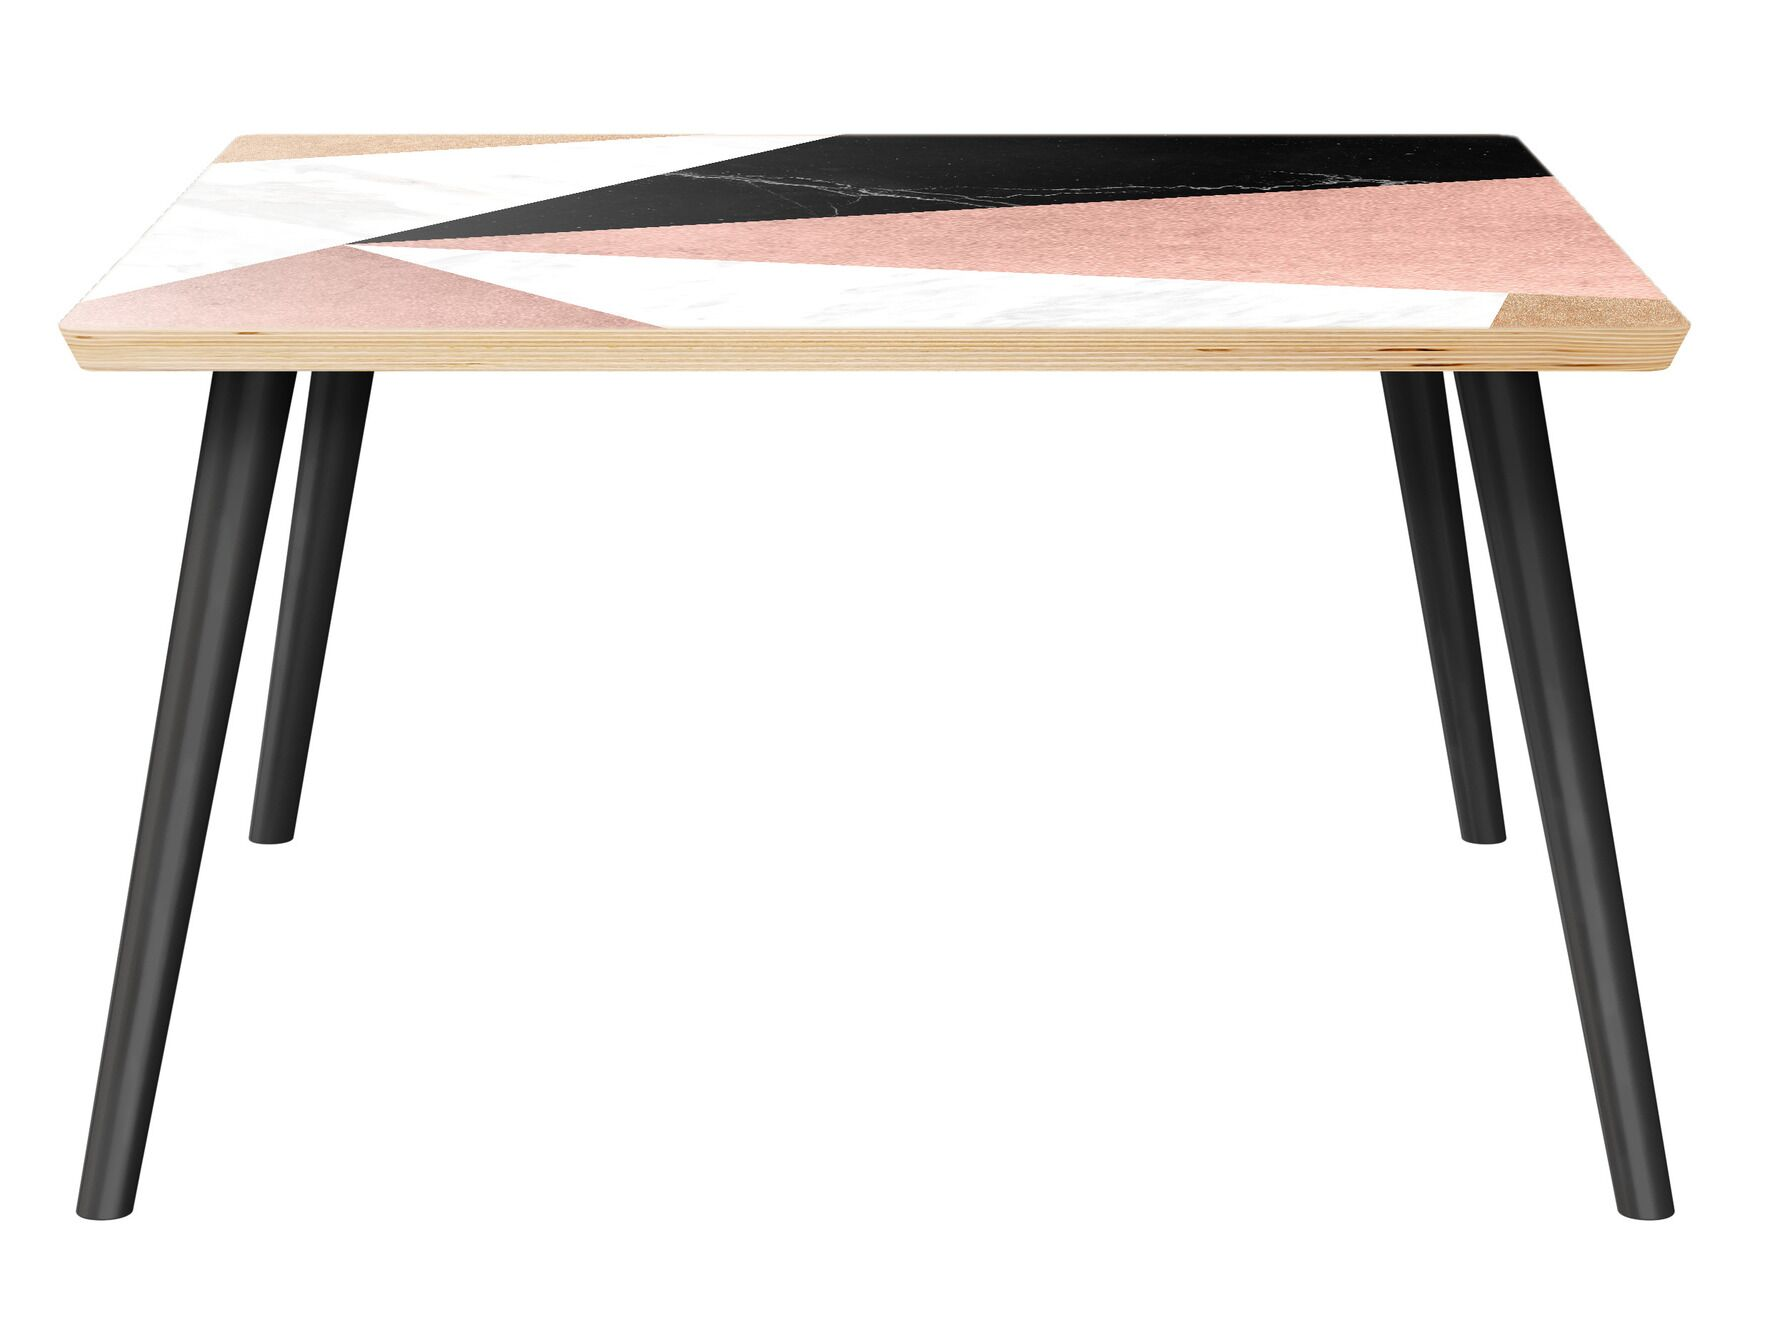 Roybal Coffee Table Table Top Color: Natural, Table Base Color: Black